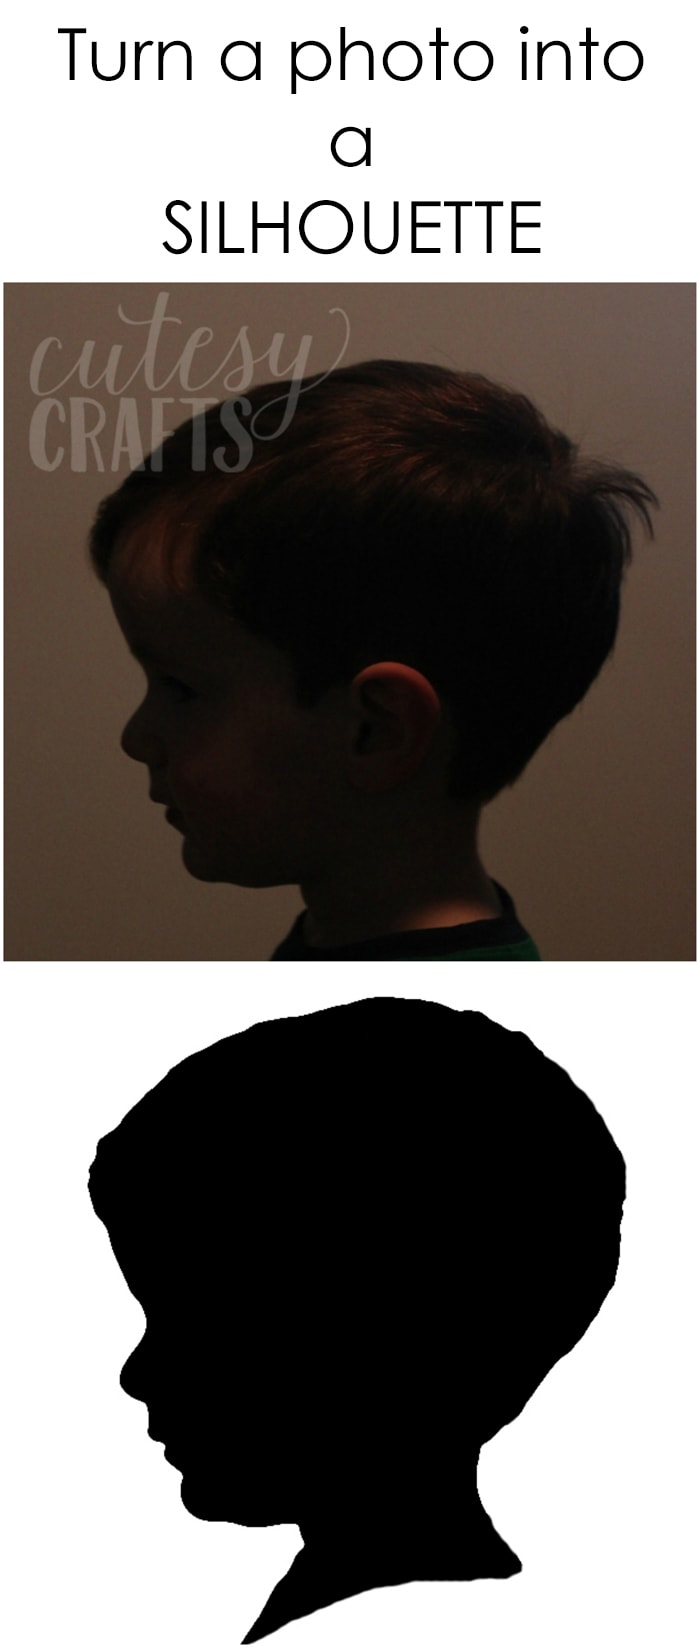 How to Turn a Photo into a Silhouette